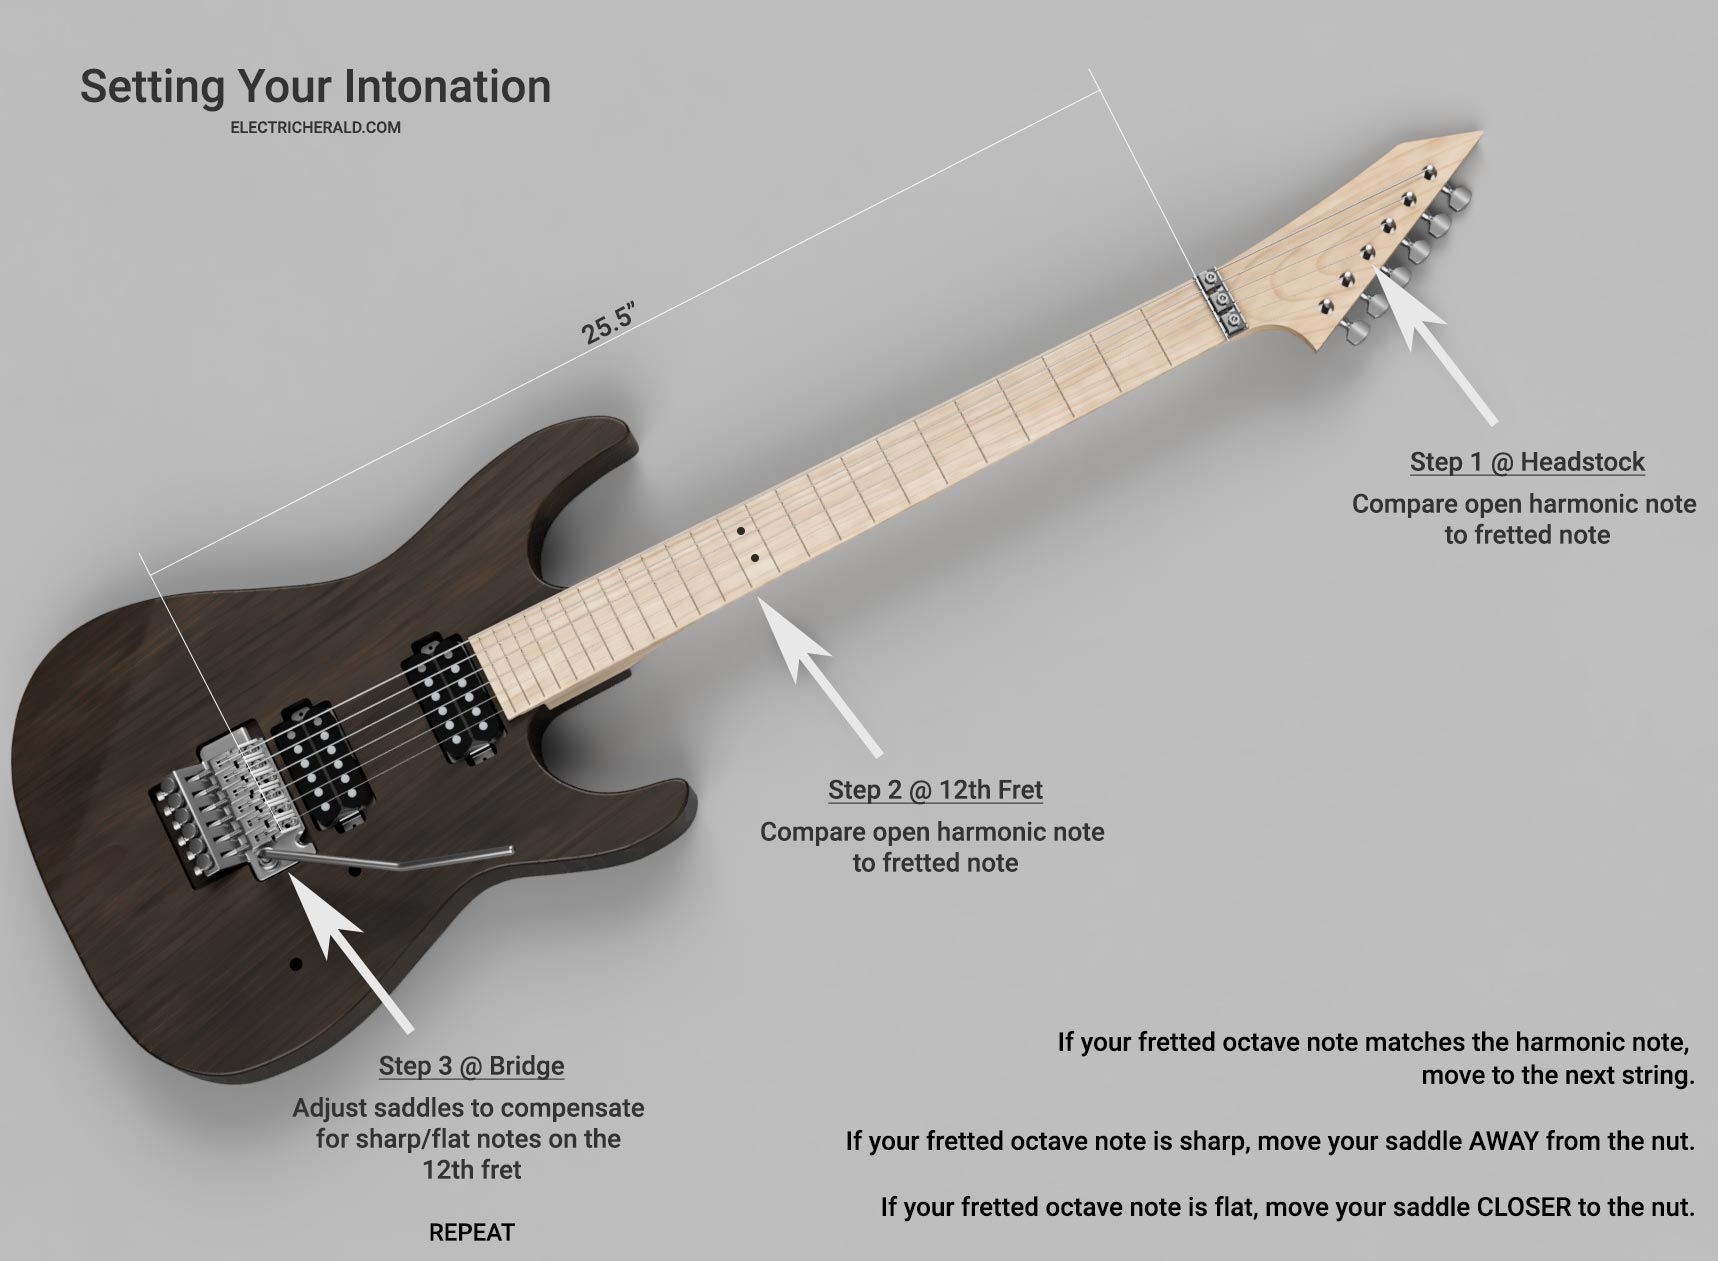 Diagram of guitar intonation setting instructions.